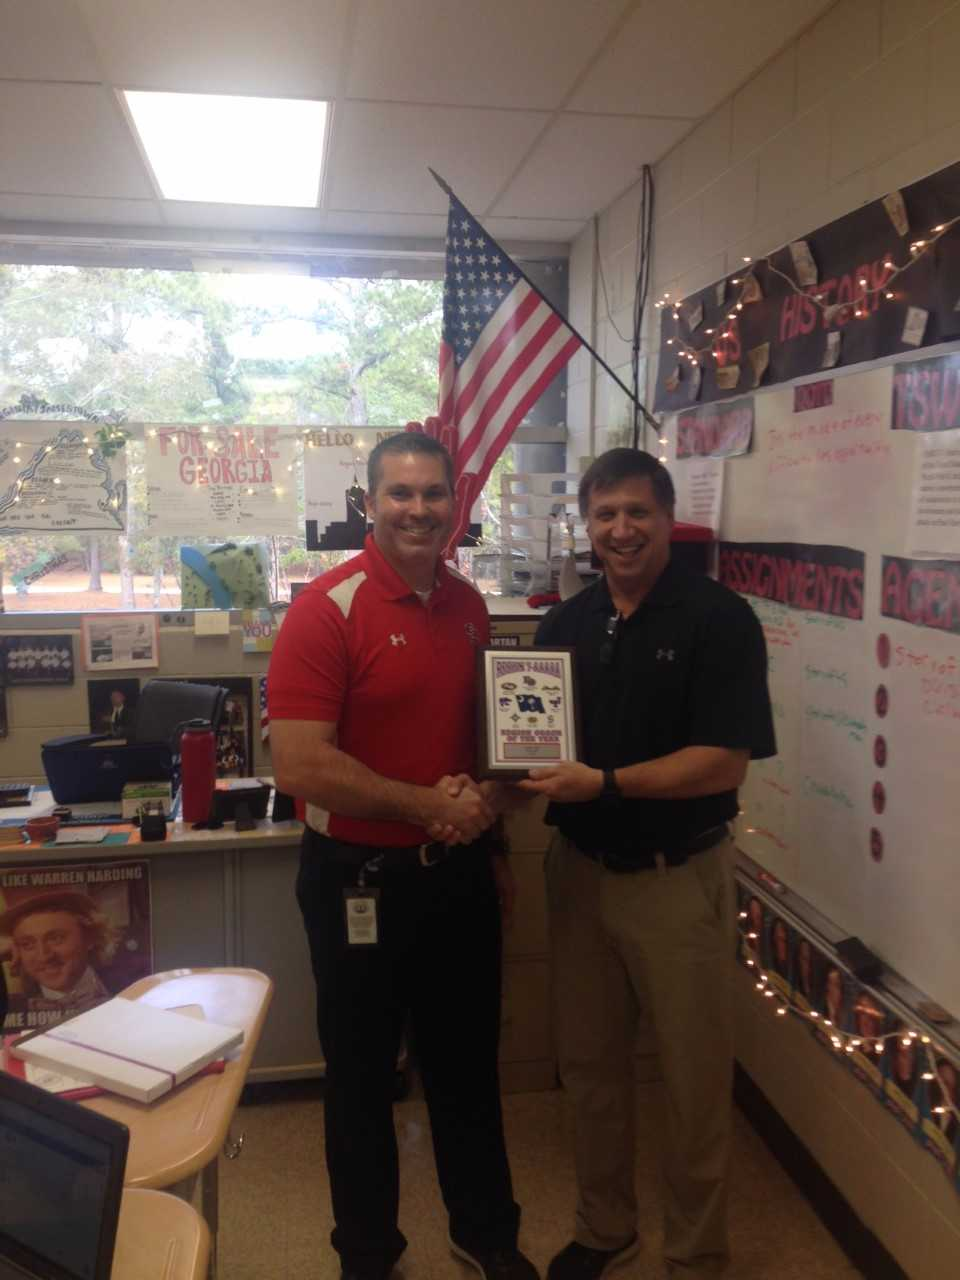 Coach Cate Named Coach of Year